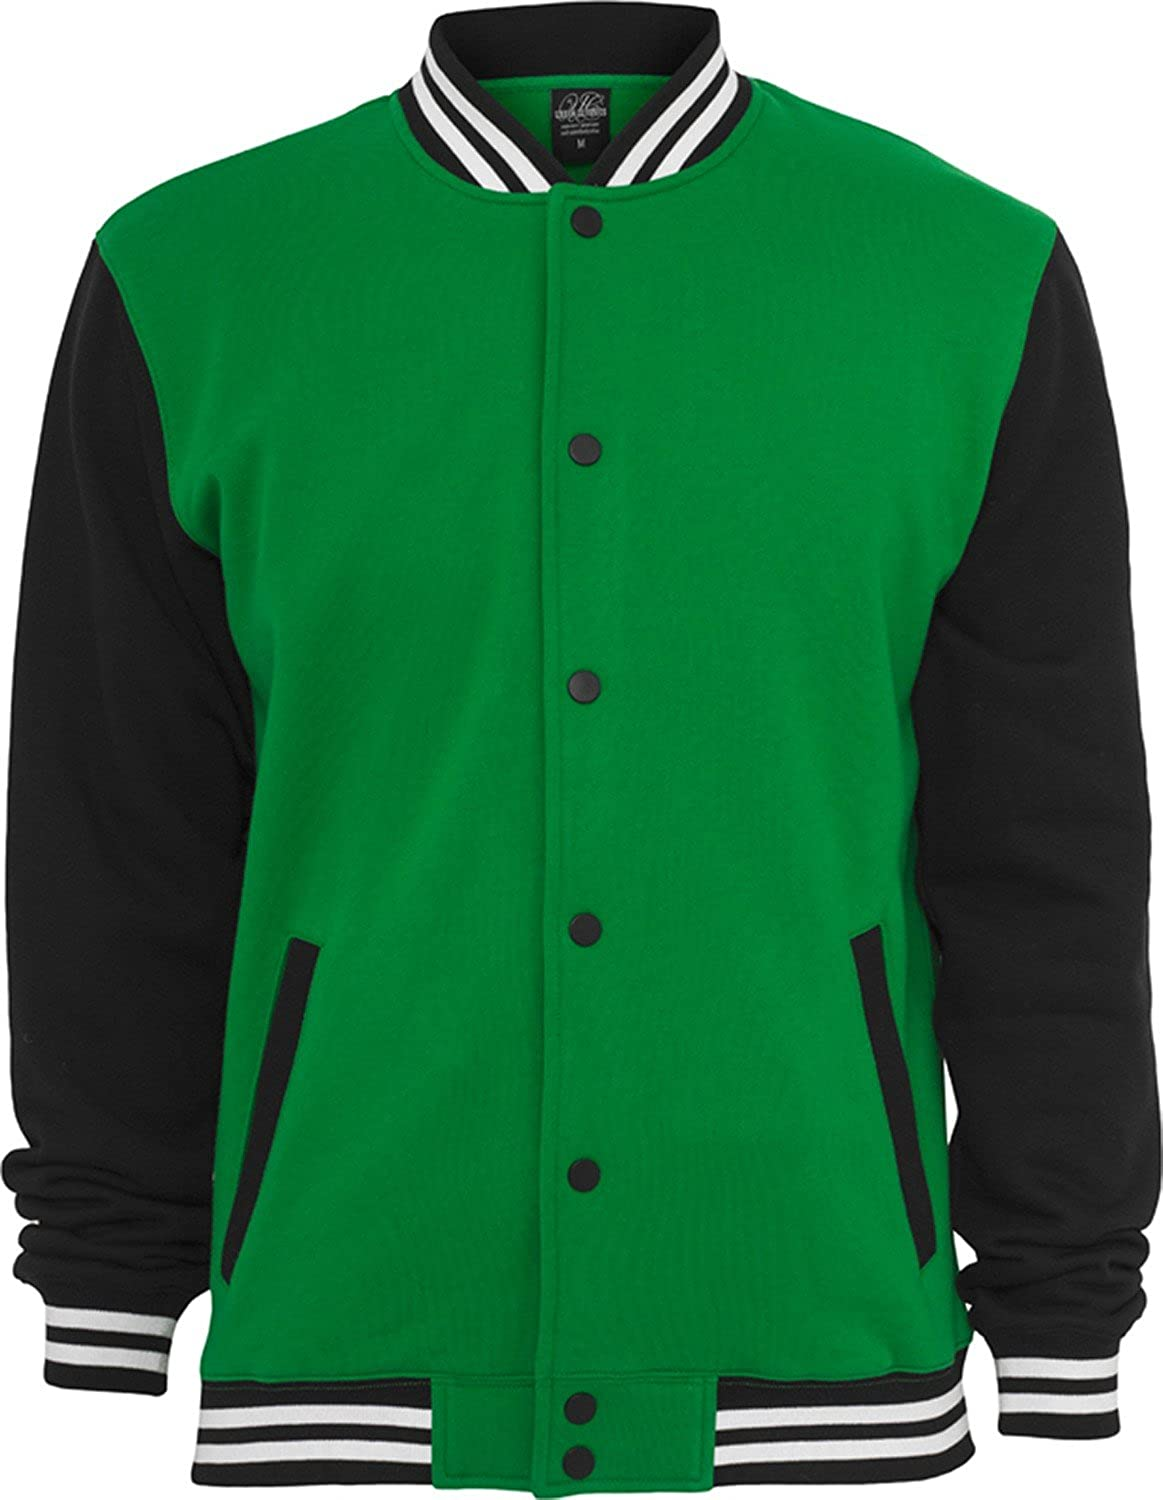 Urban Classics Men 3-tone College Sweatjacket TB444, color:c.green/black/ white;size:XXL: Amazon.co.uk: Clothing